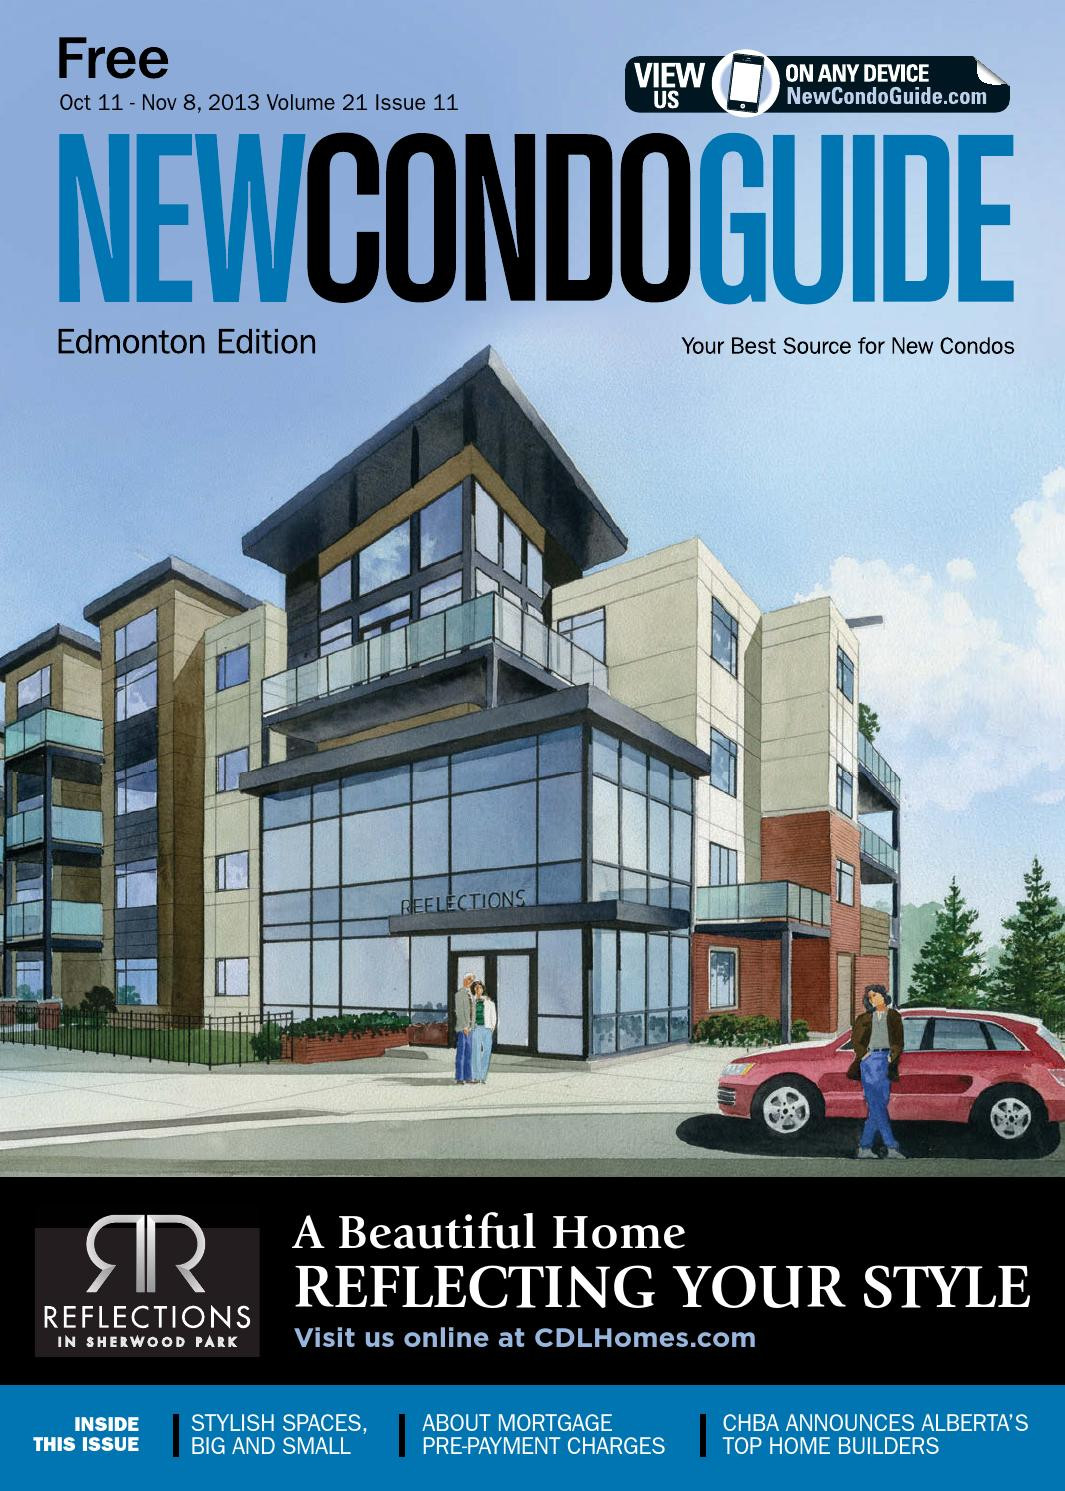 Alberta Hardwood Flooring Edmonton Reviews Of Edmonton New Condo Guide Oct 11 2013 by Nexthome issuu Intended for Page 1